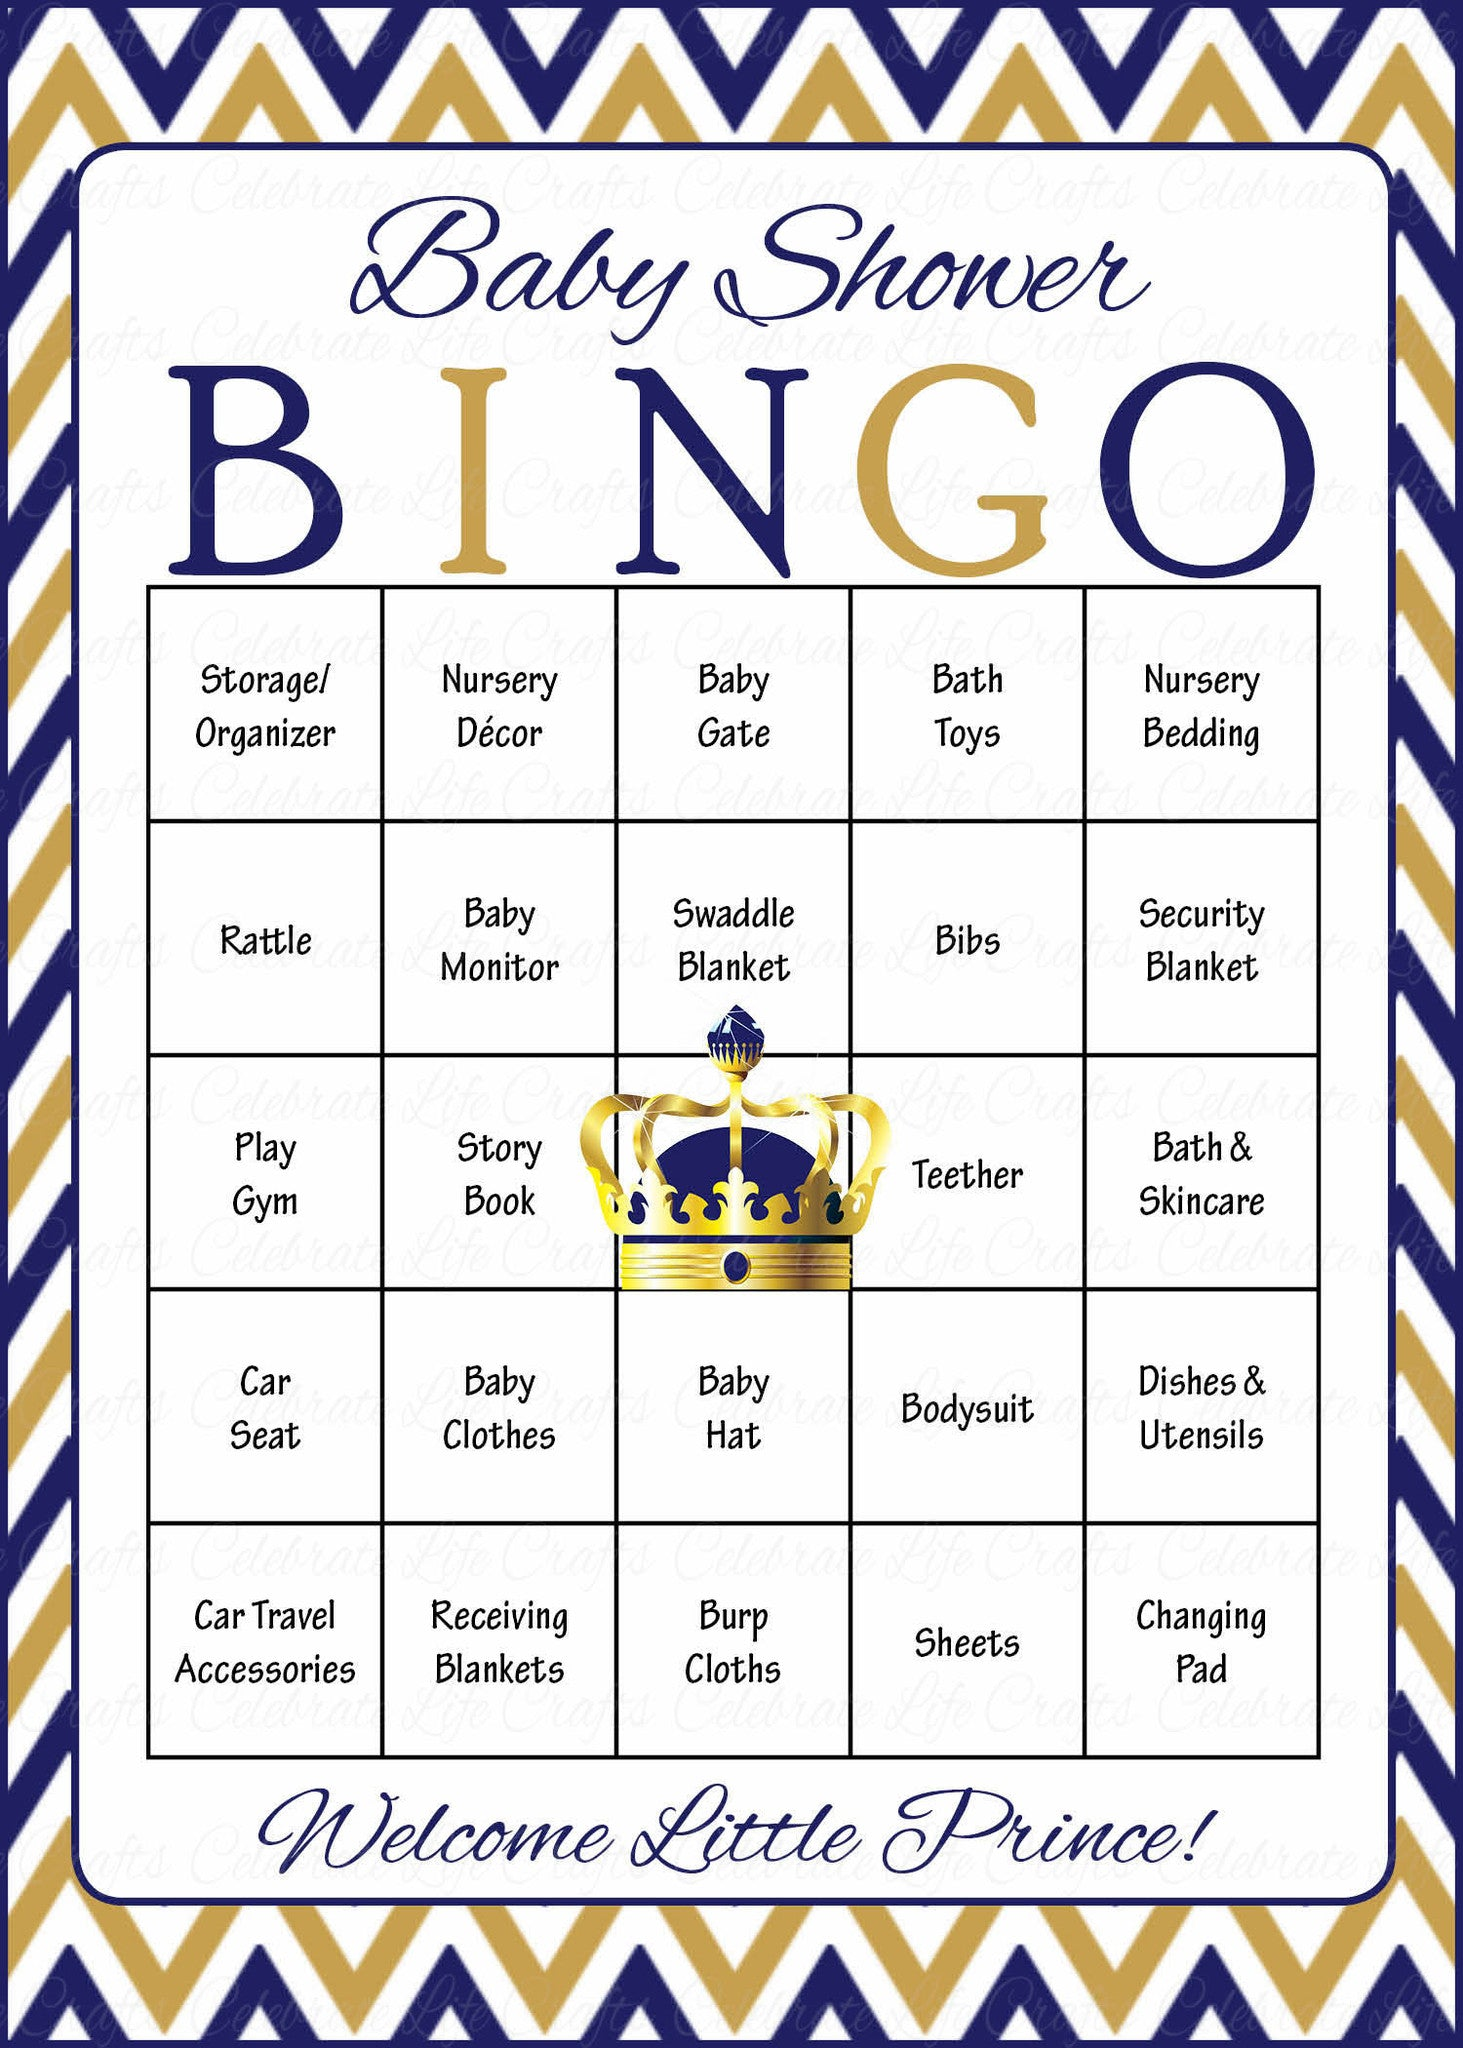 Prince Baby Bingo Cards   Printable Download   Prefilled   Baby Shower Game  For Boy   Navy U0026 Gold.